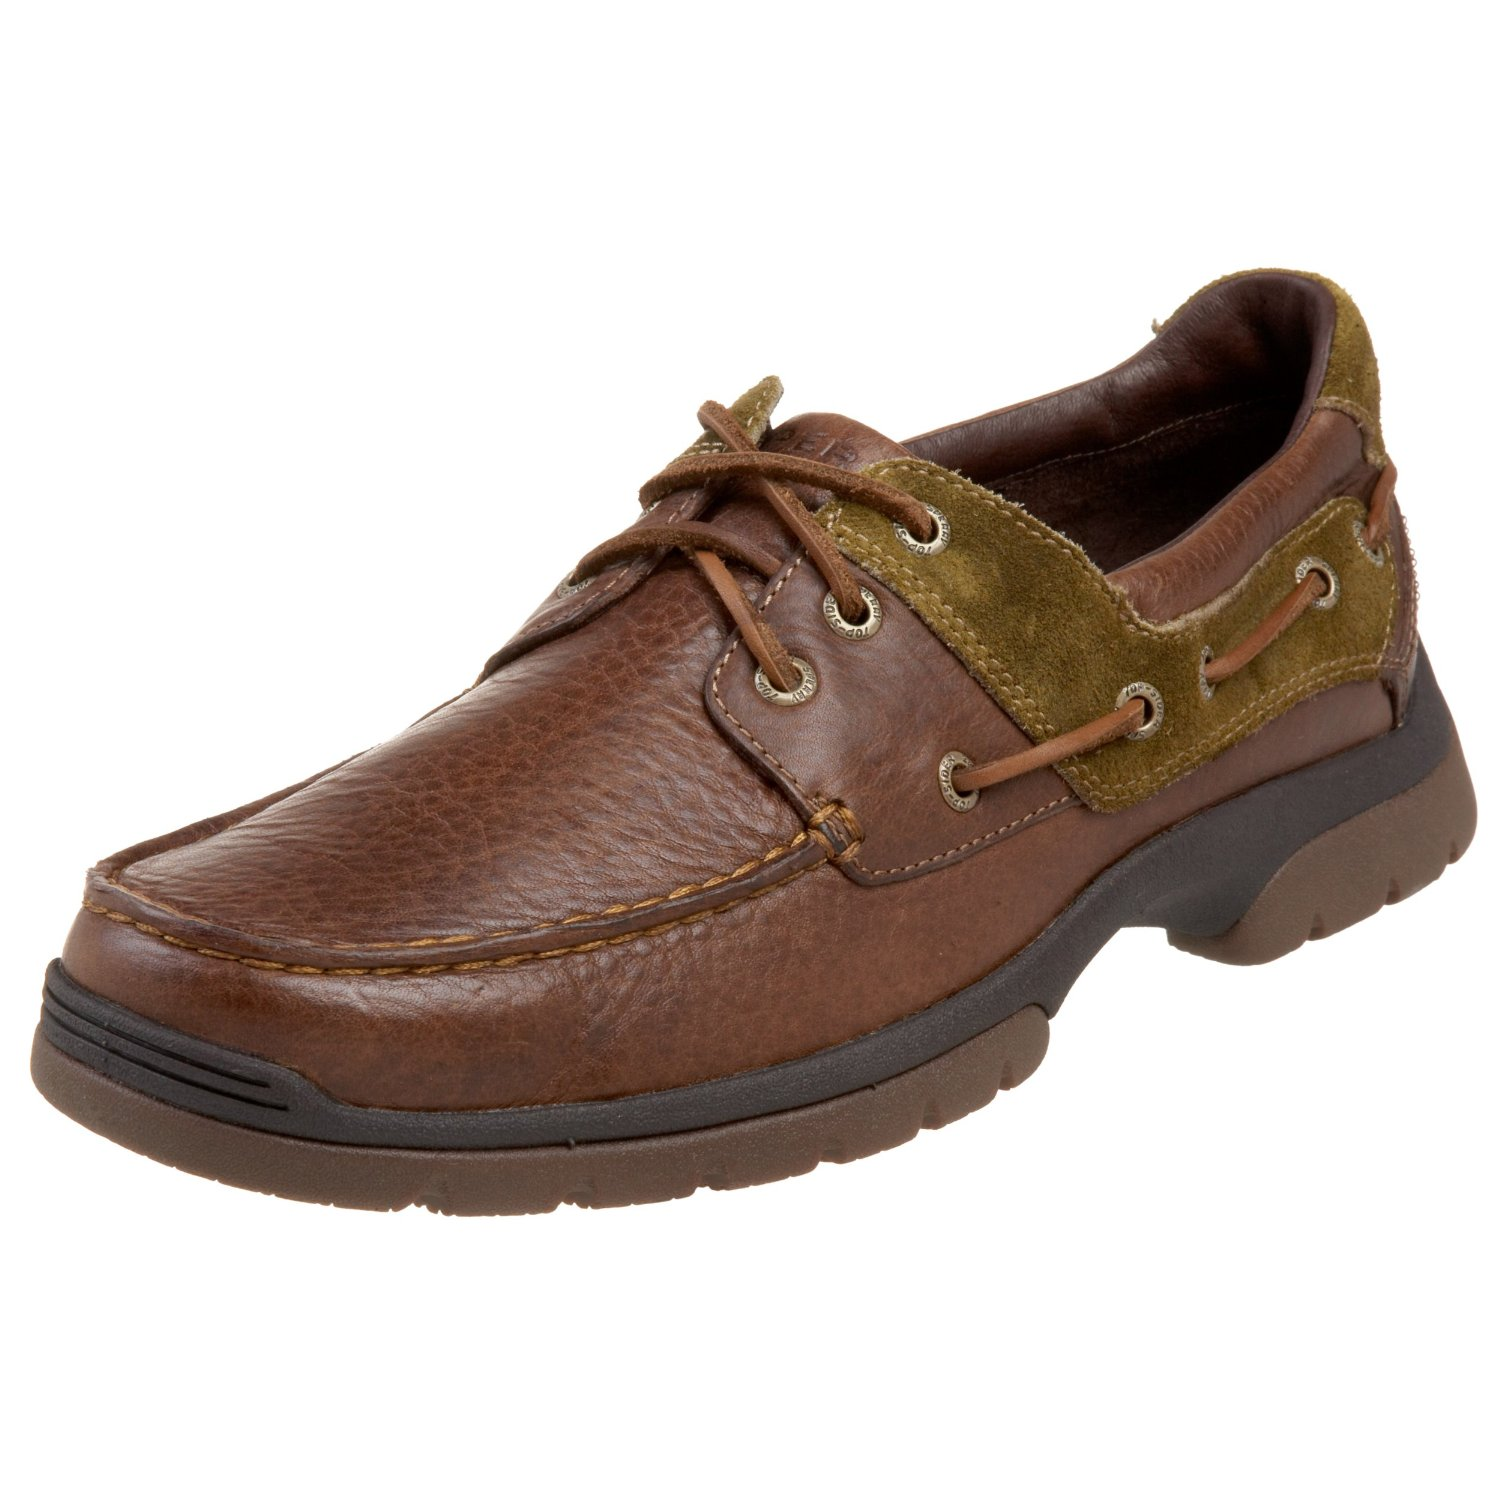 Mens Designer Boat Shoes Sale